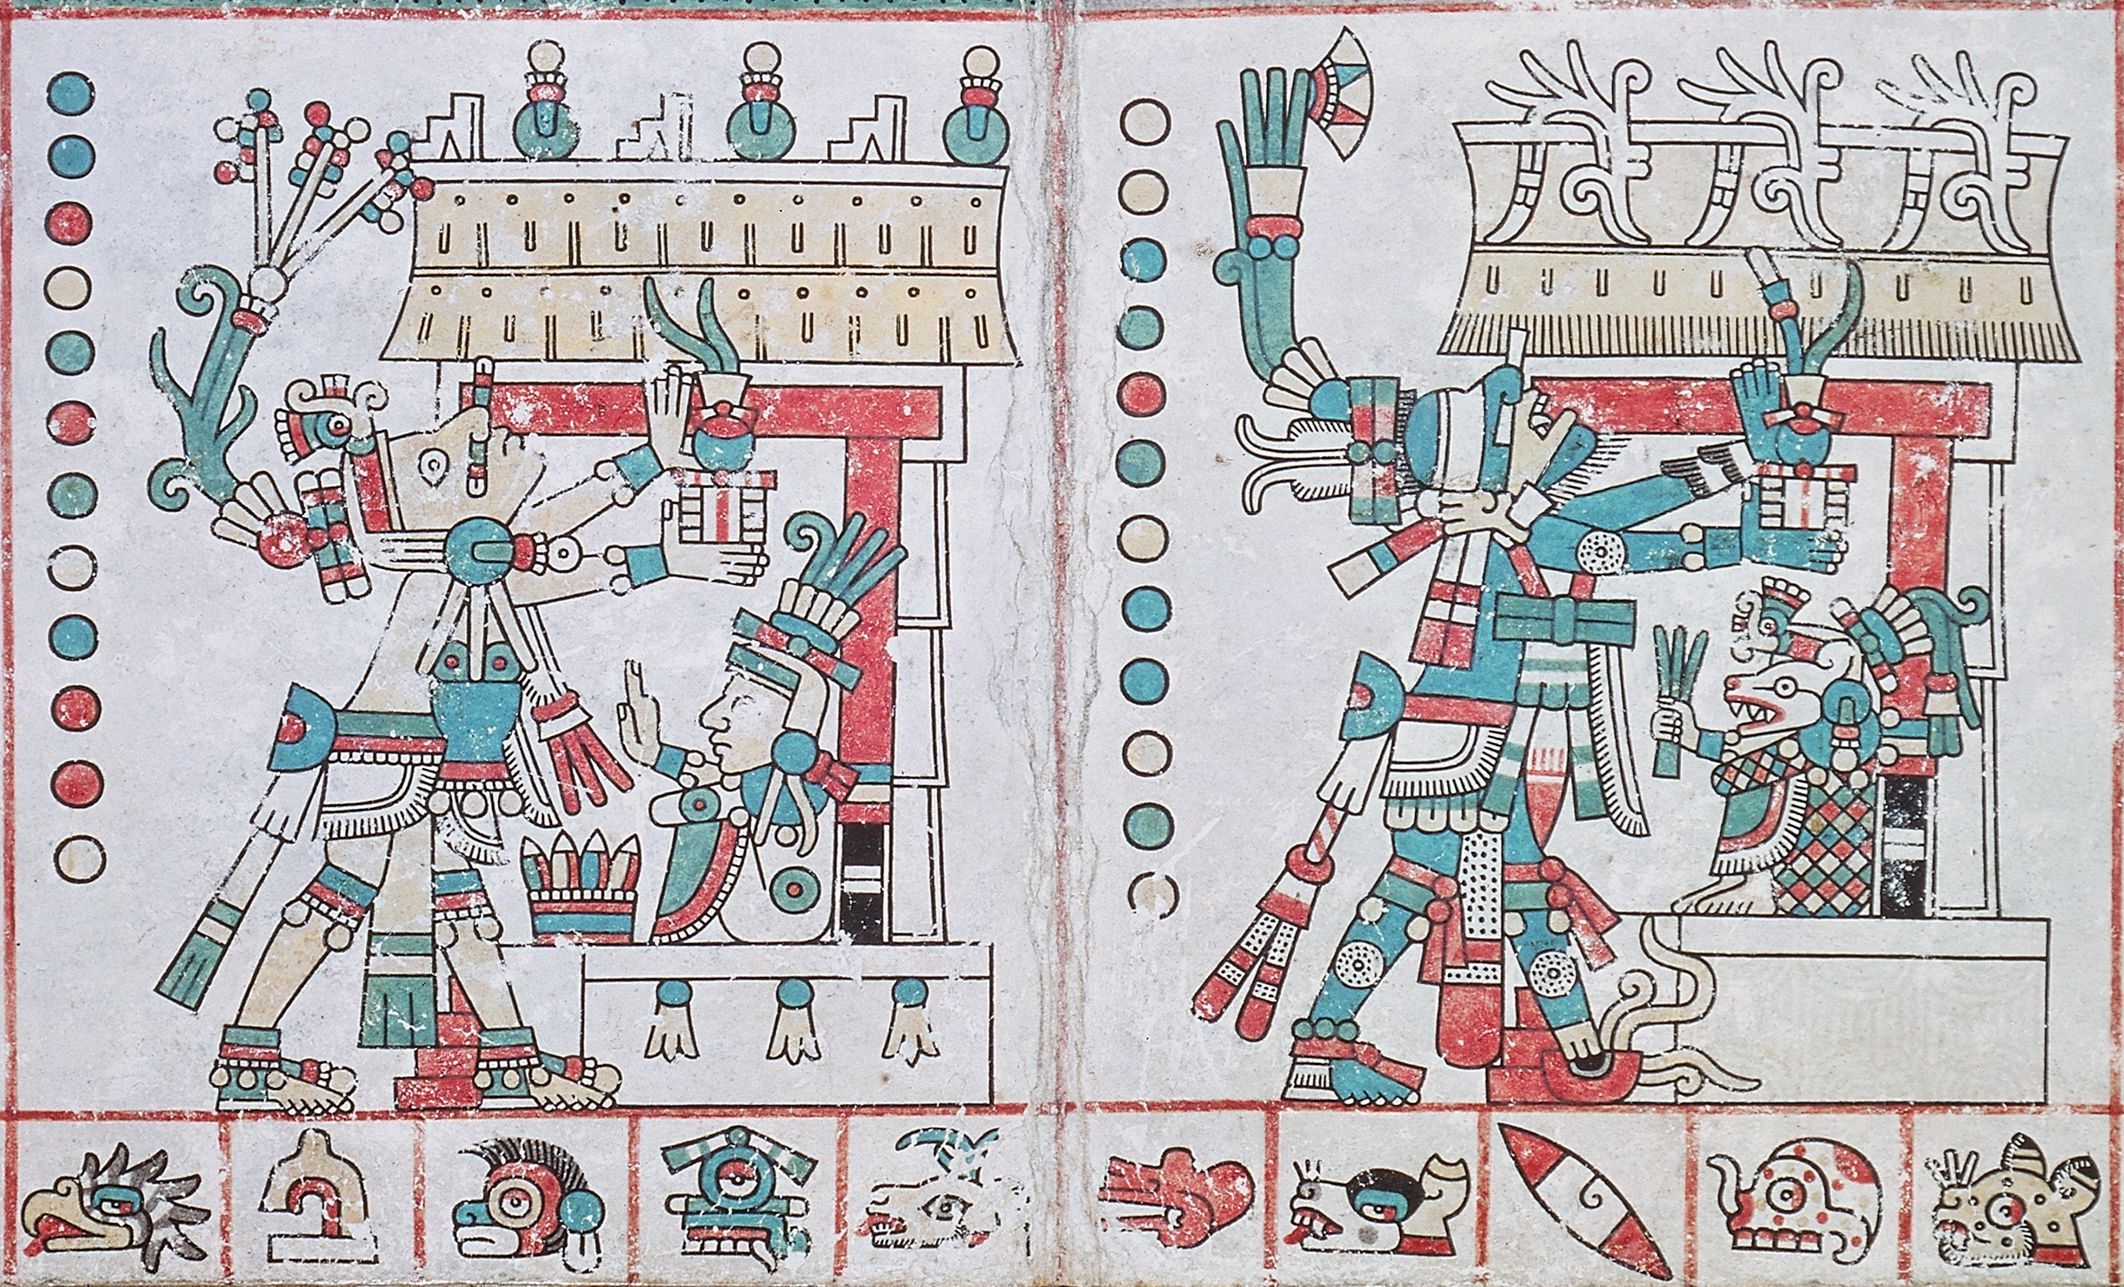 Centeotl The Aztec God or Goddess of Maize